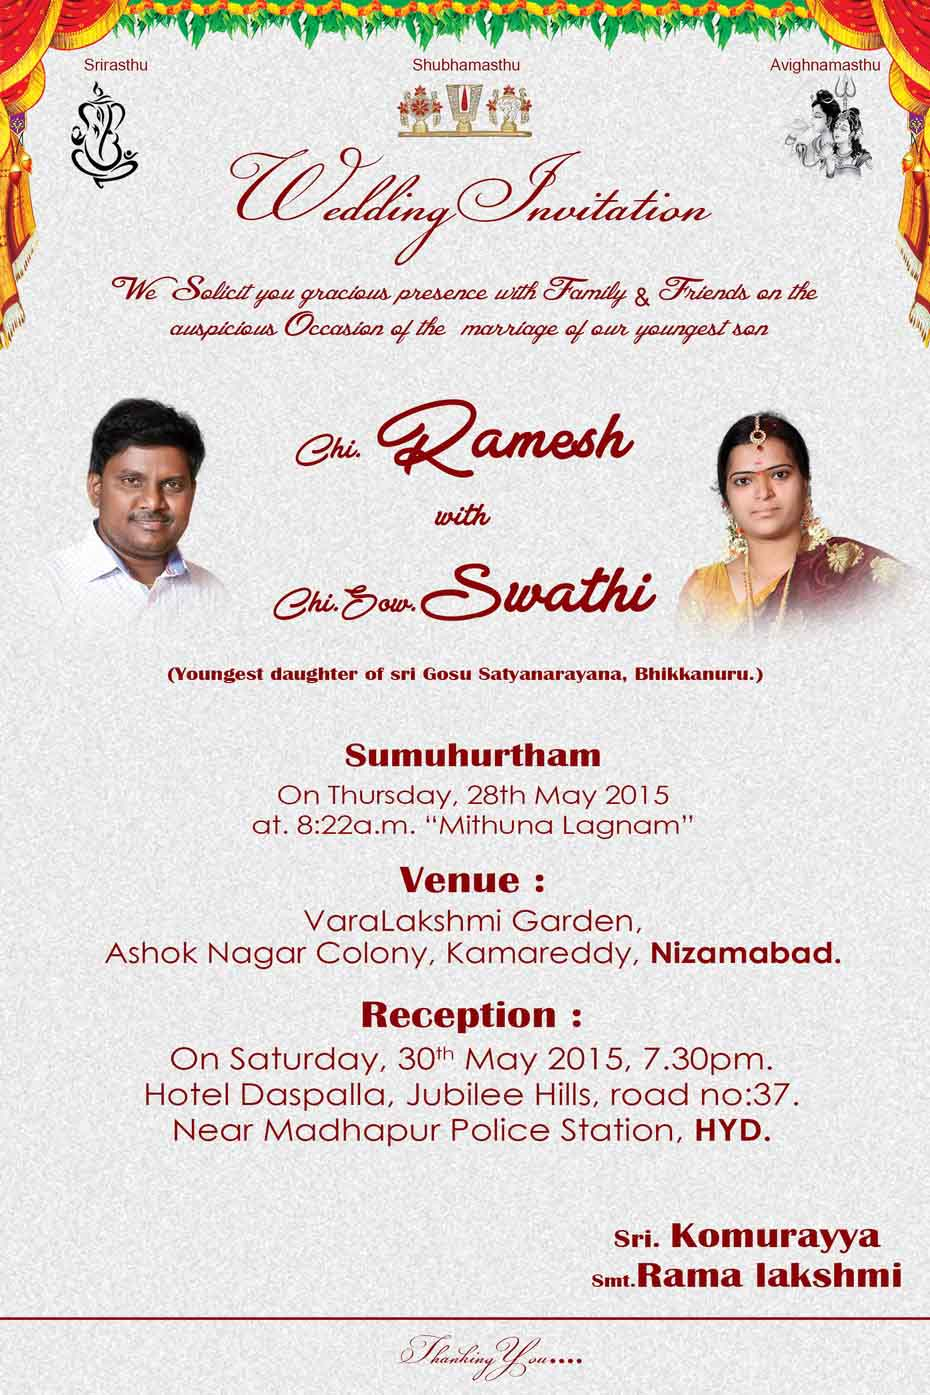 Thagubothu Rameshs Wedding Invitation Card